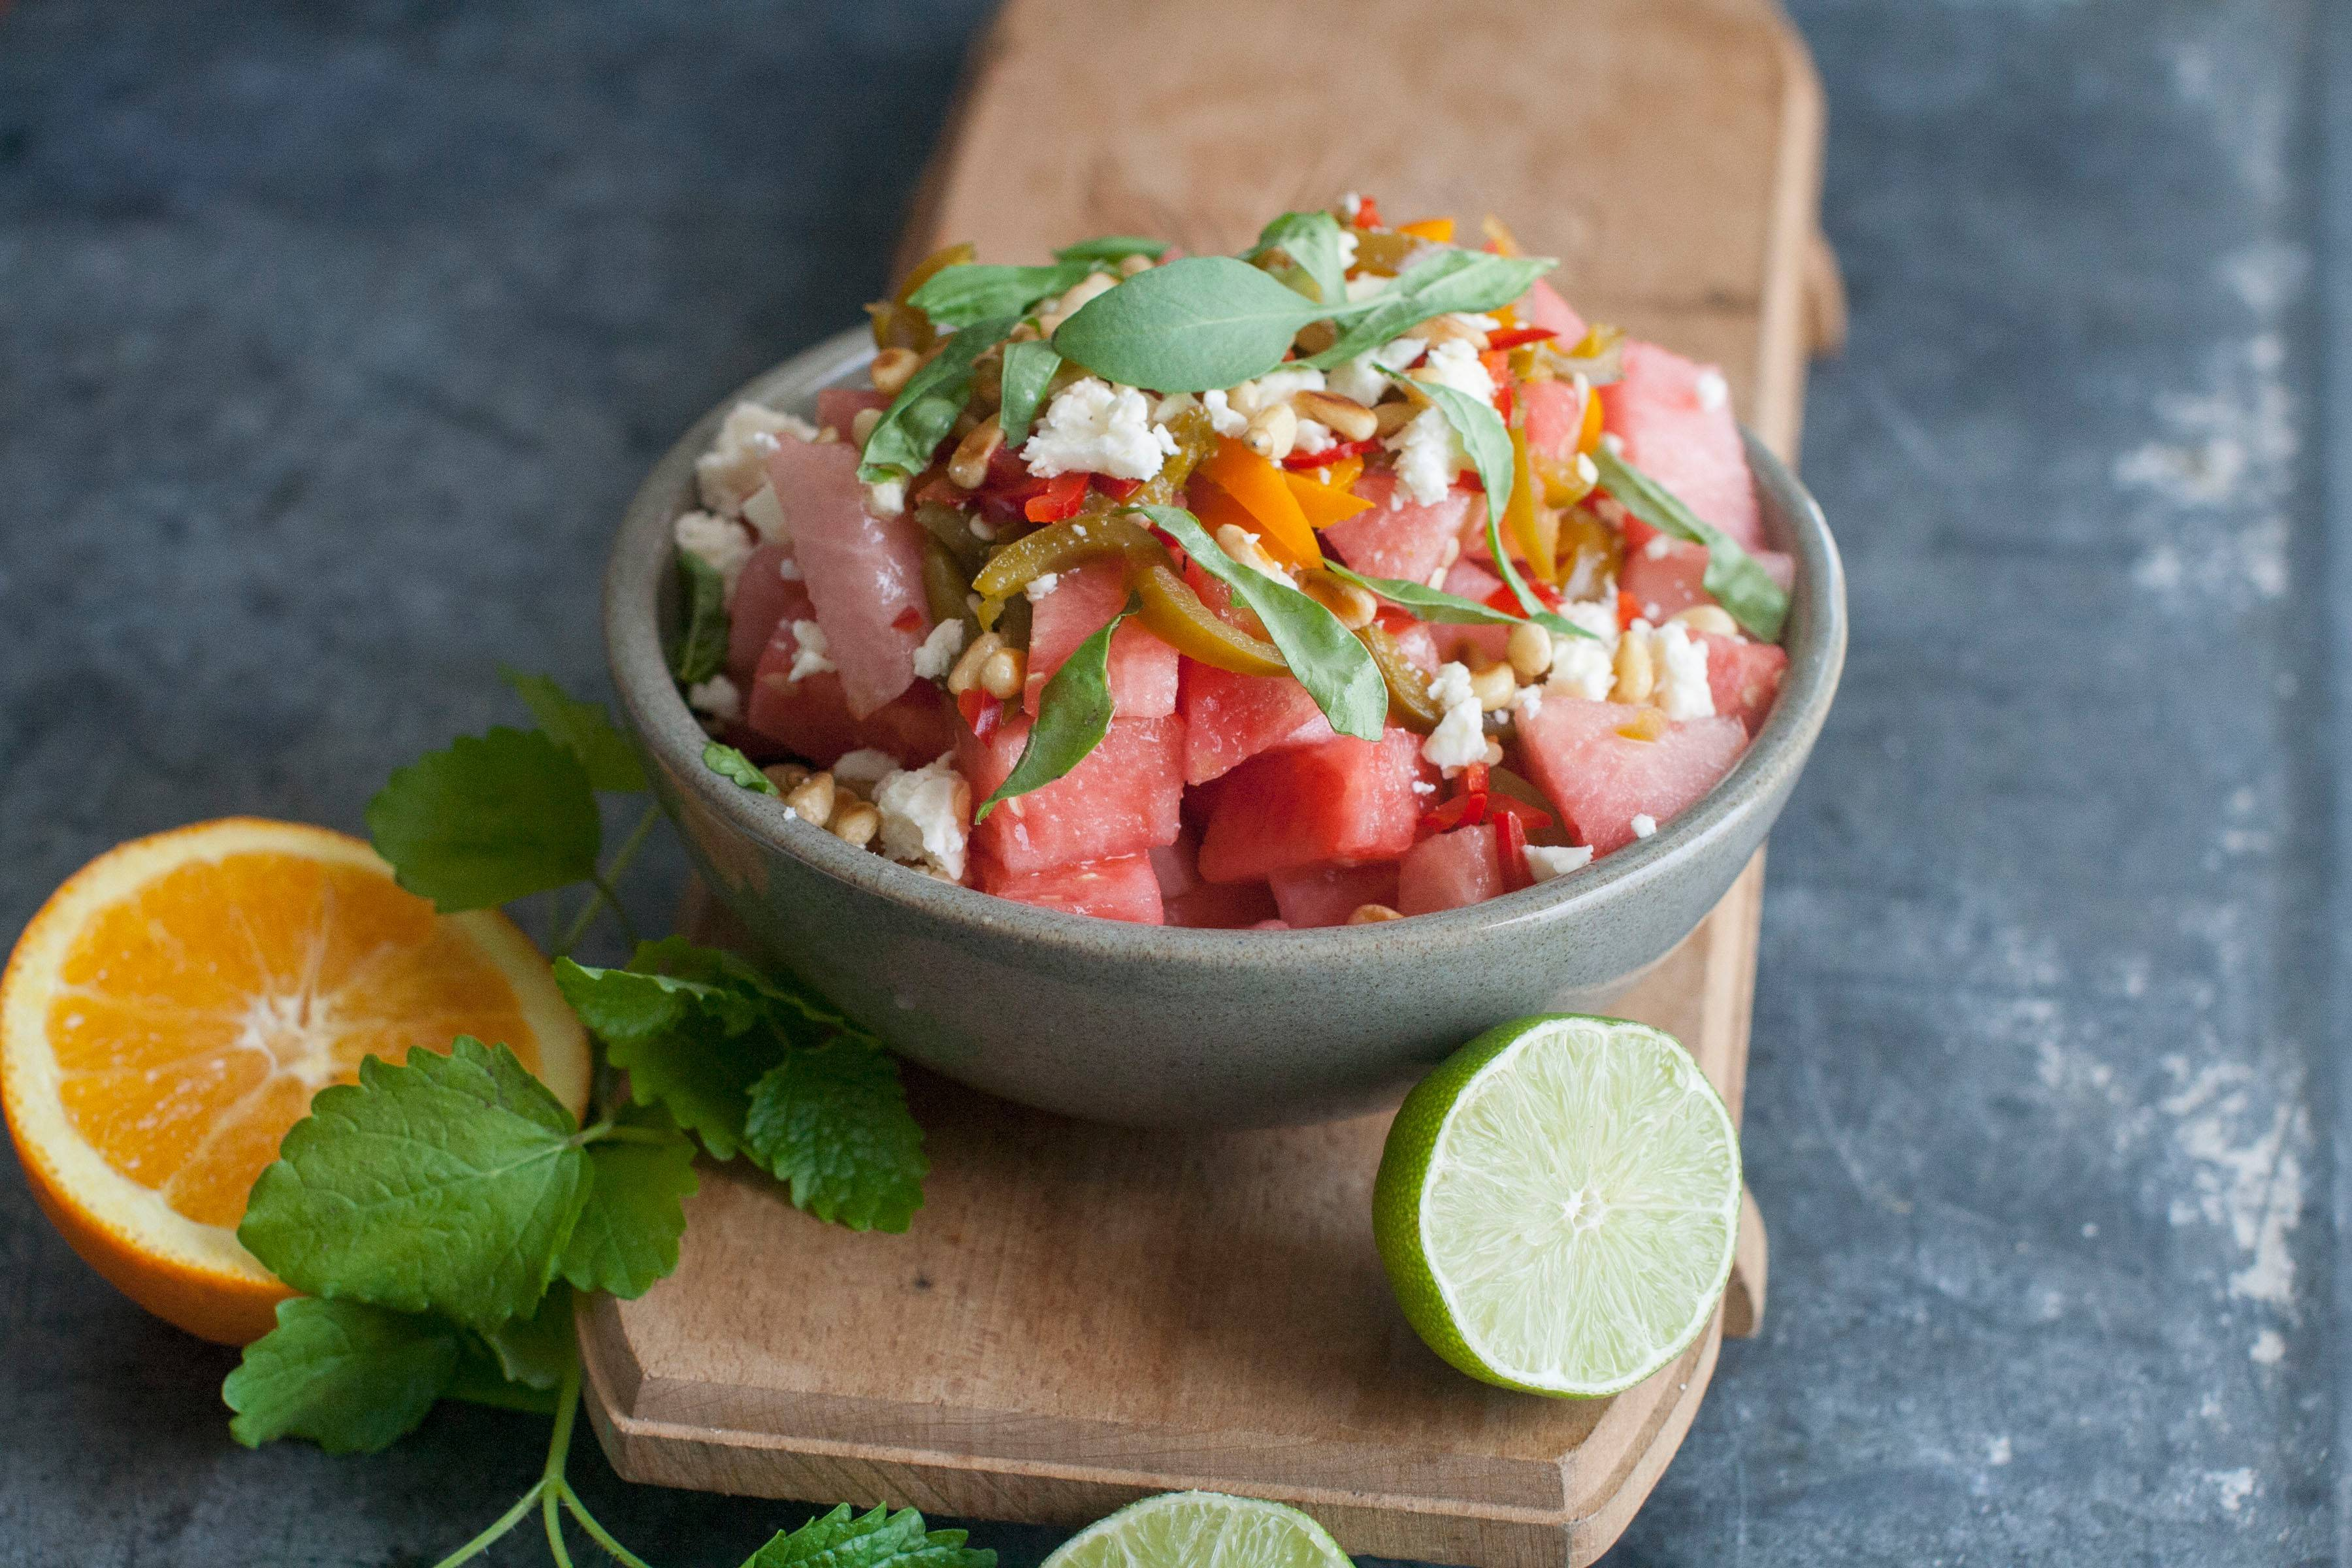 Spicy Watermelon Salad with Feta and Basil